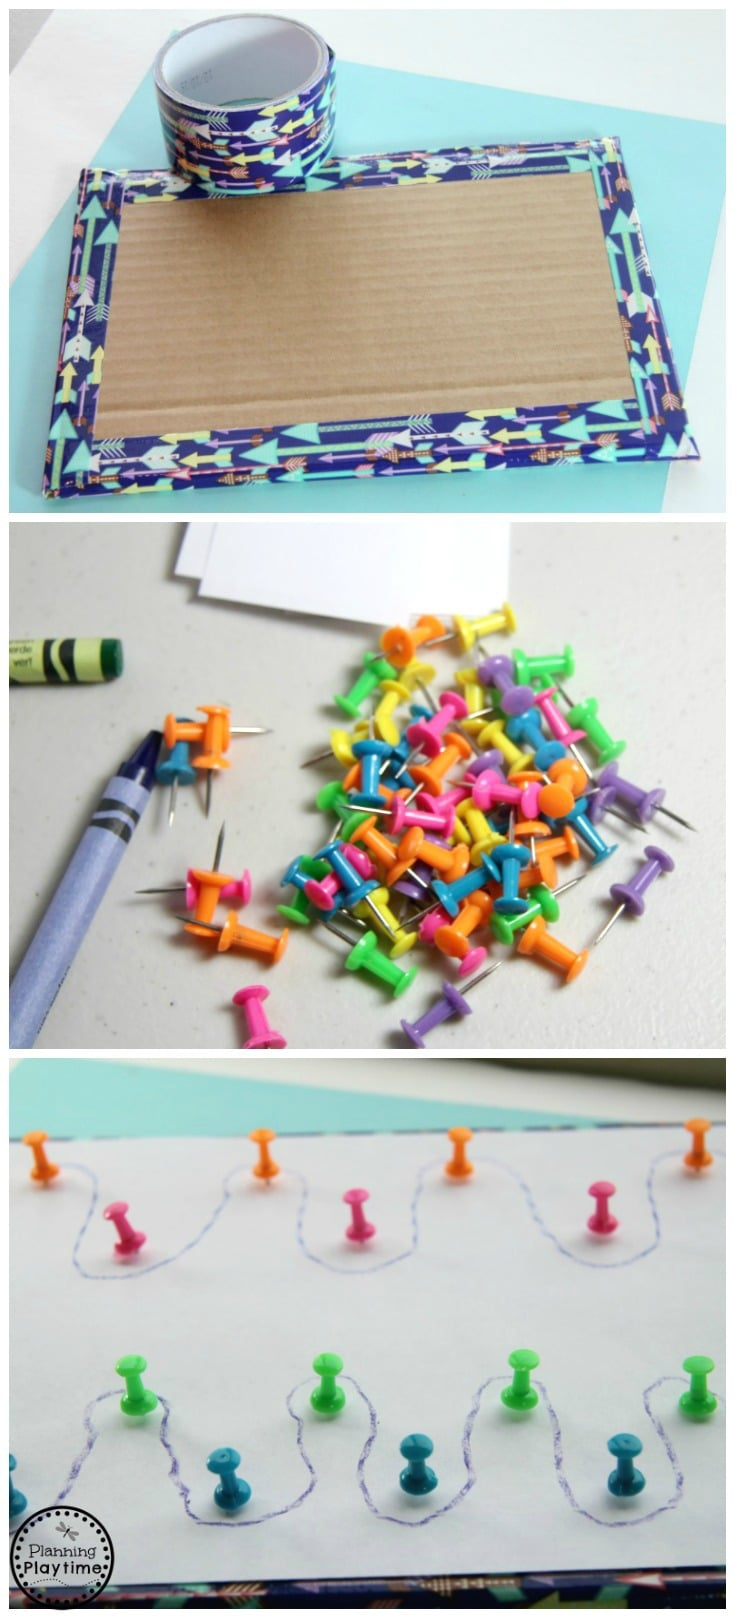 Awesome Pre-Writing Activity for kids.